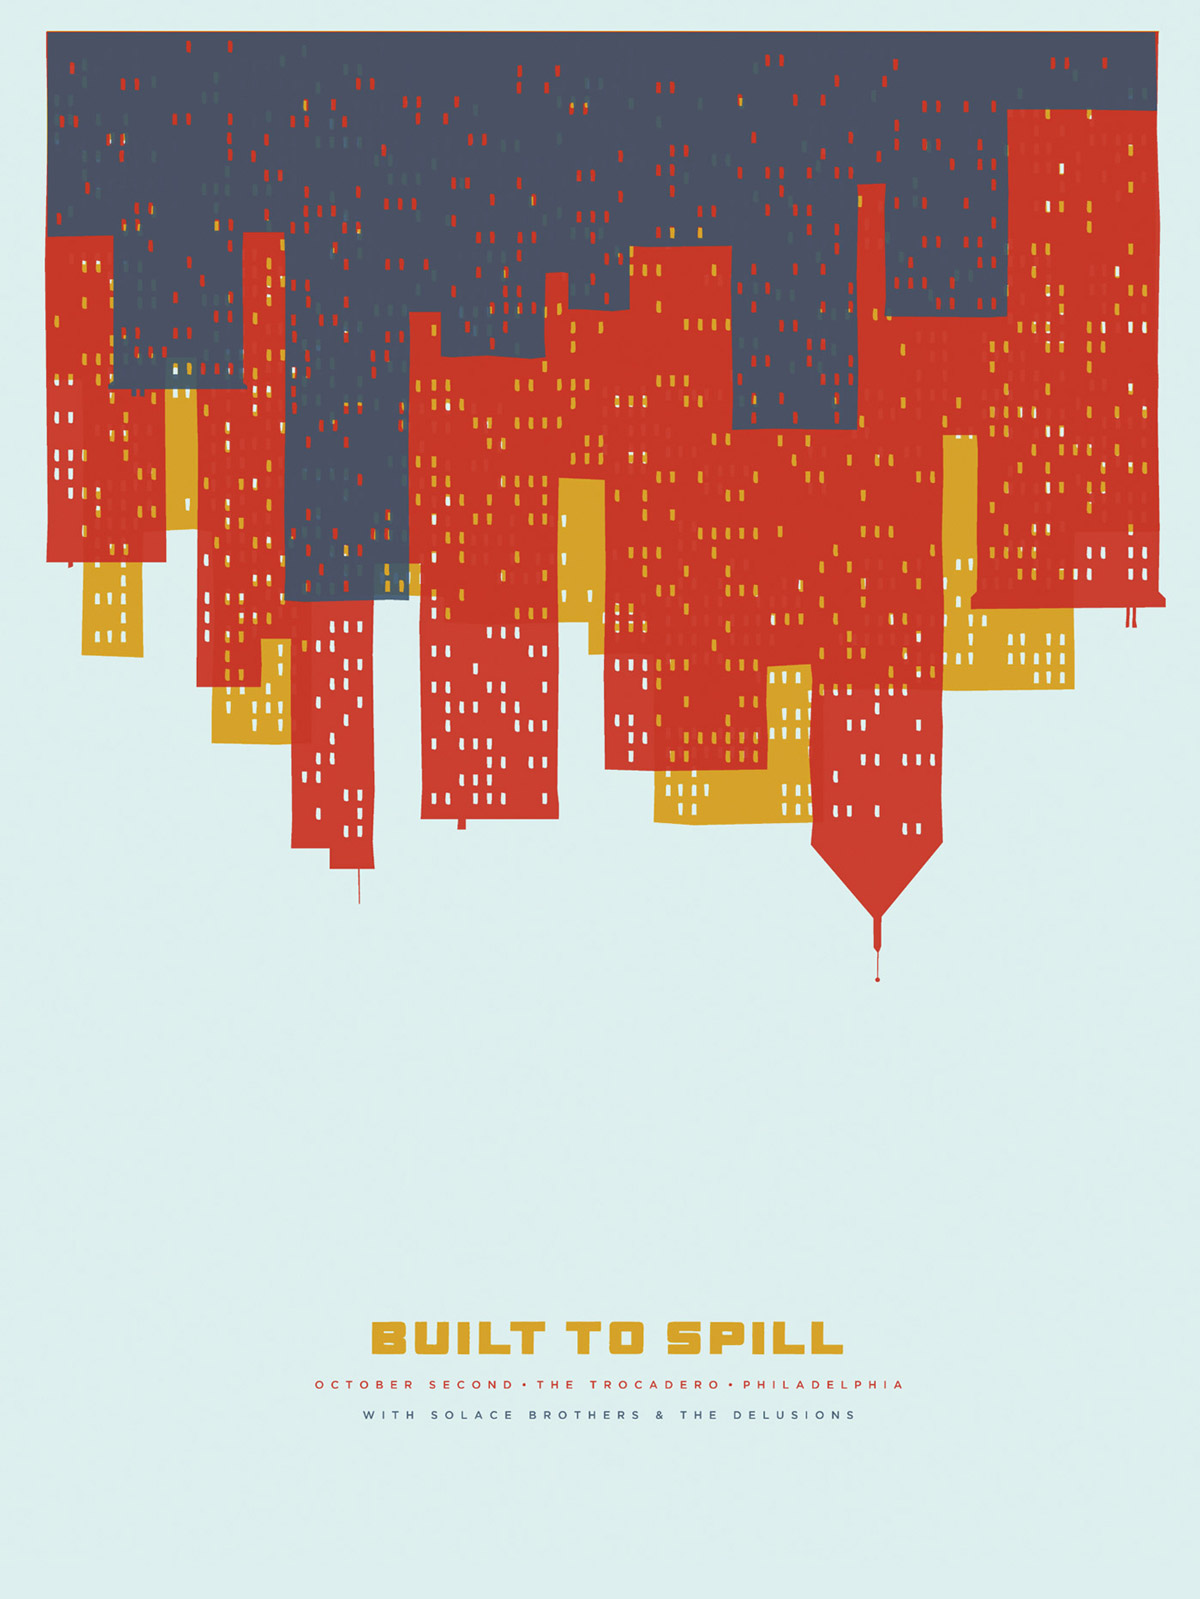 Built To Spill Gig Poster - The Heads of State